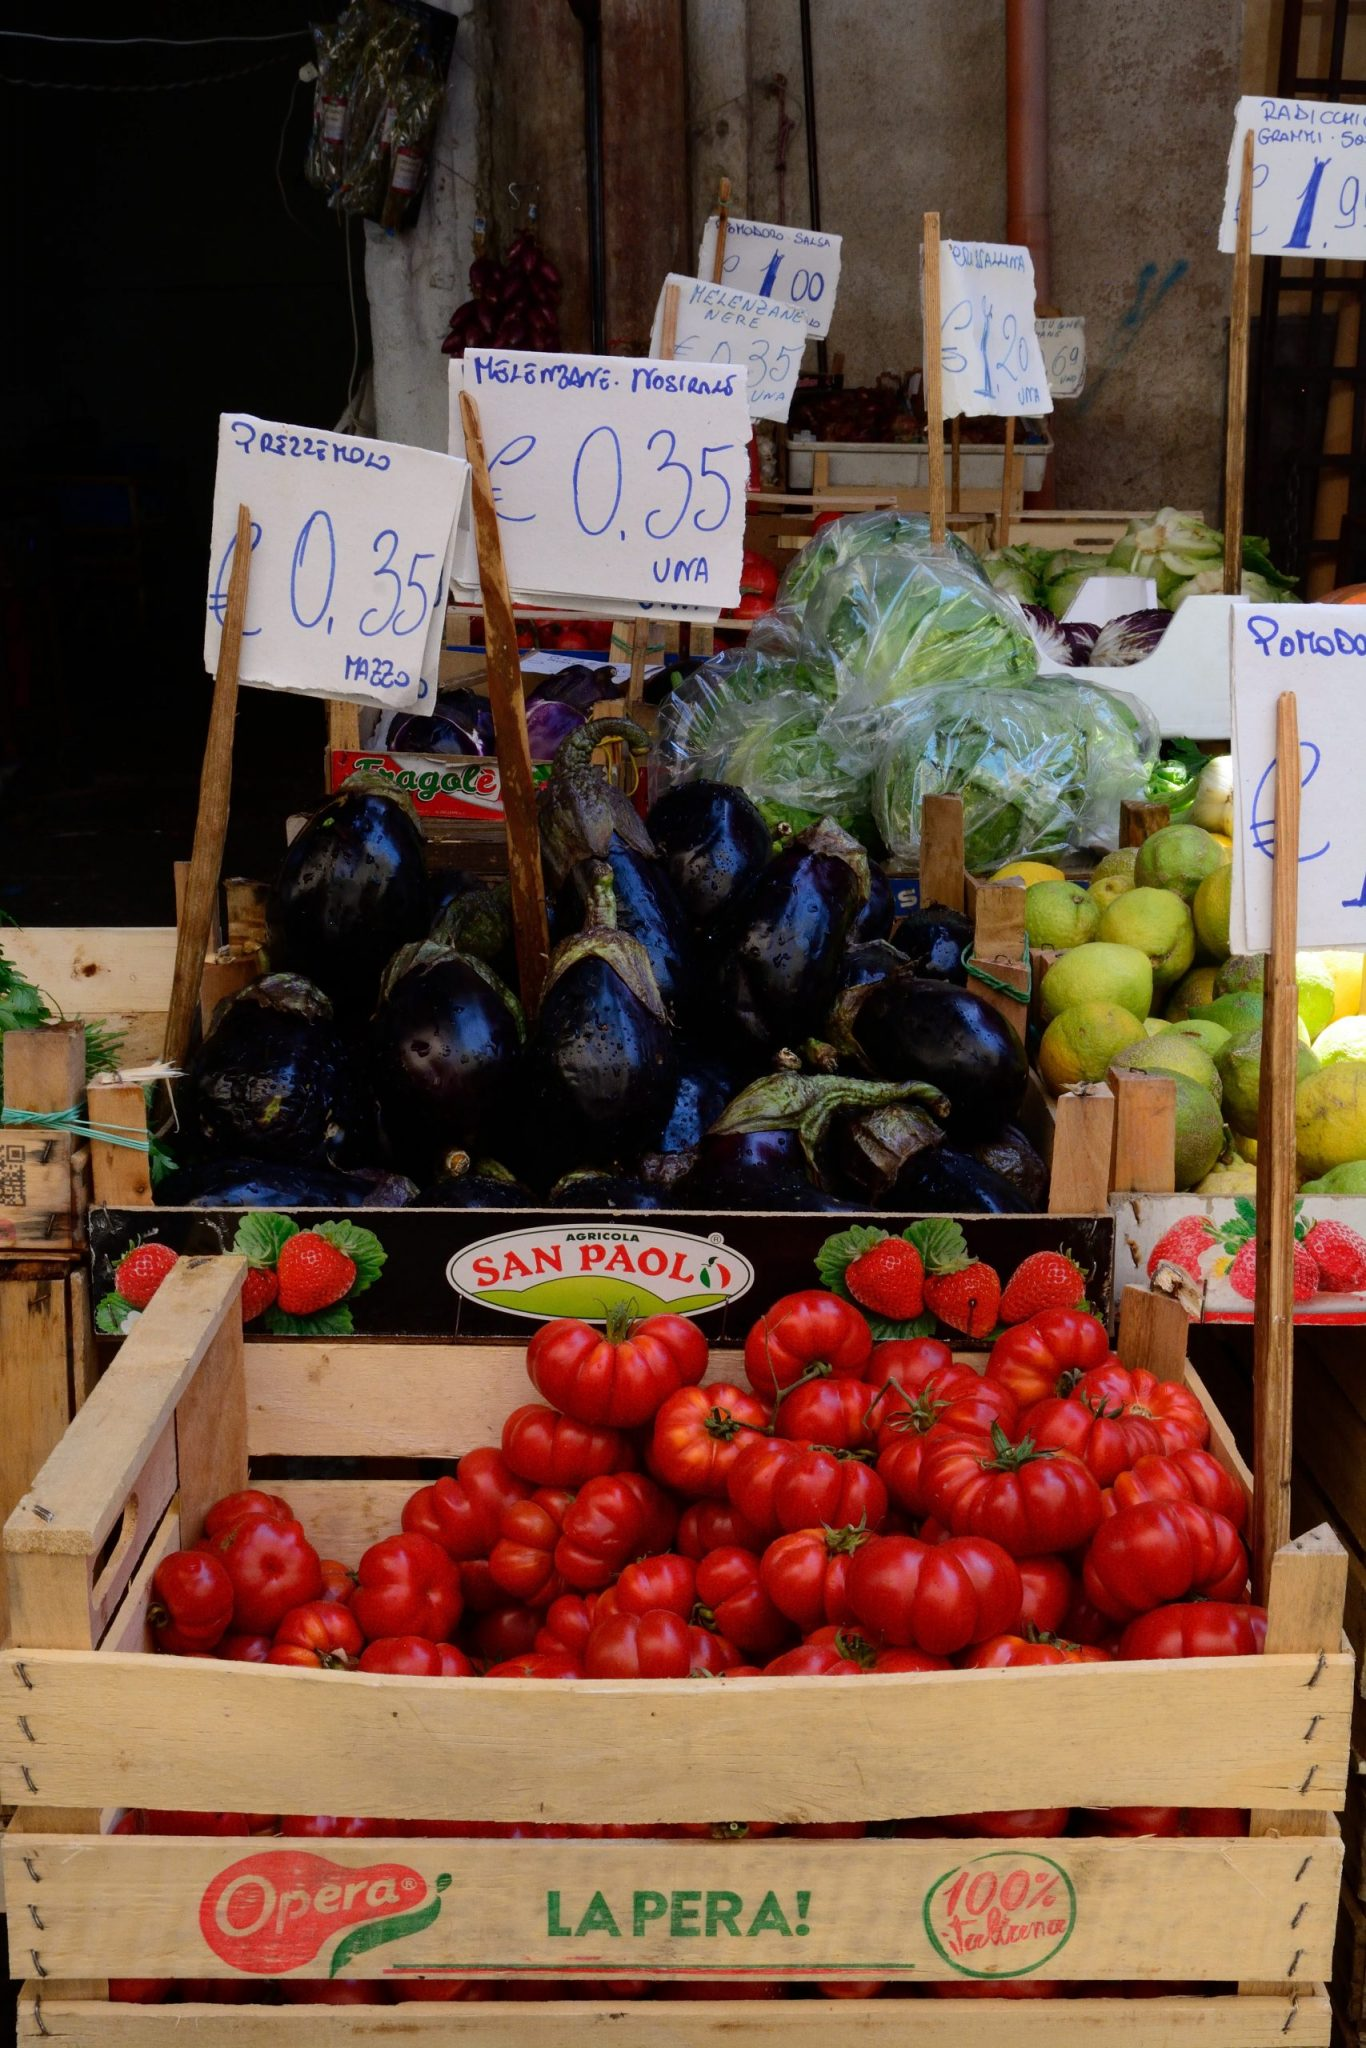 a photo of eggplants and tomatoes for sale in Italy